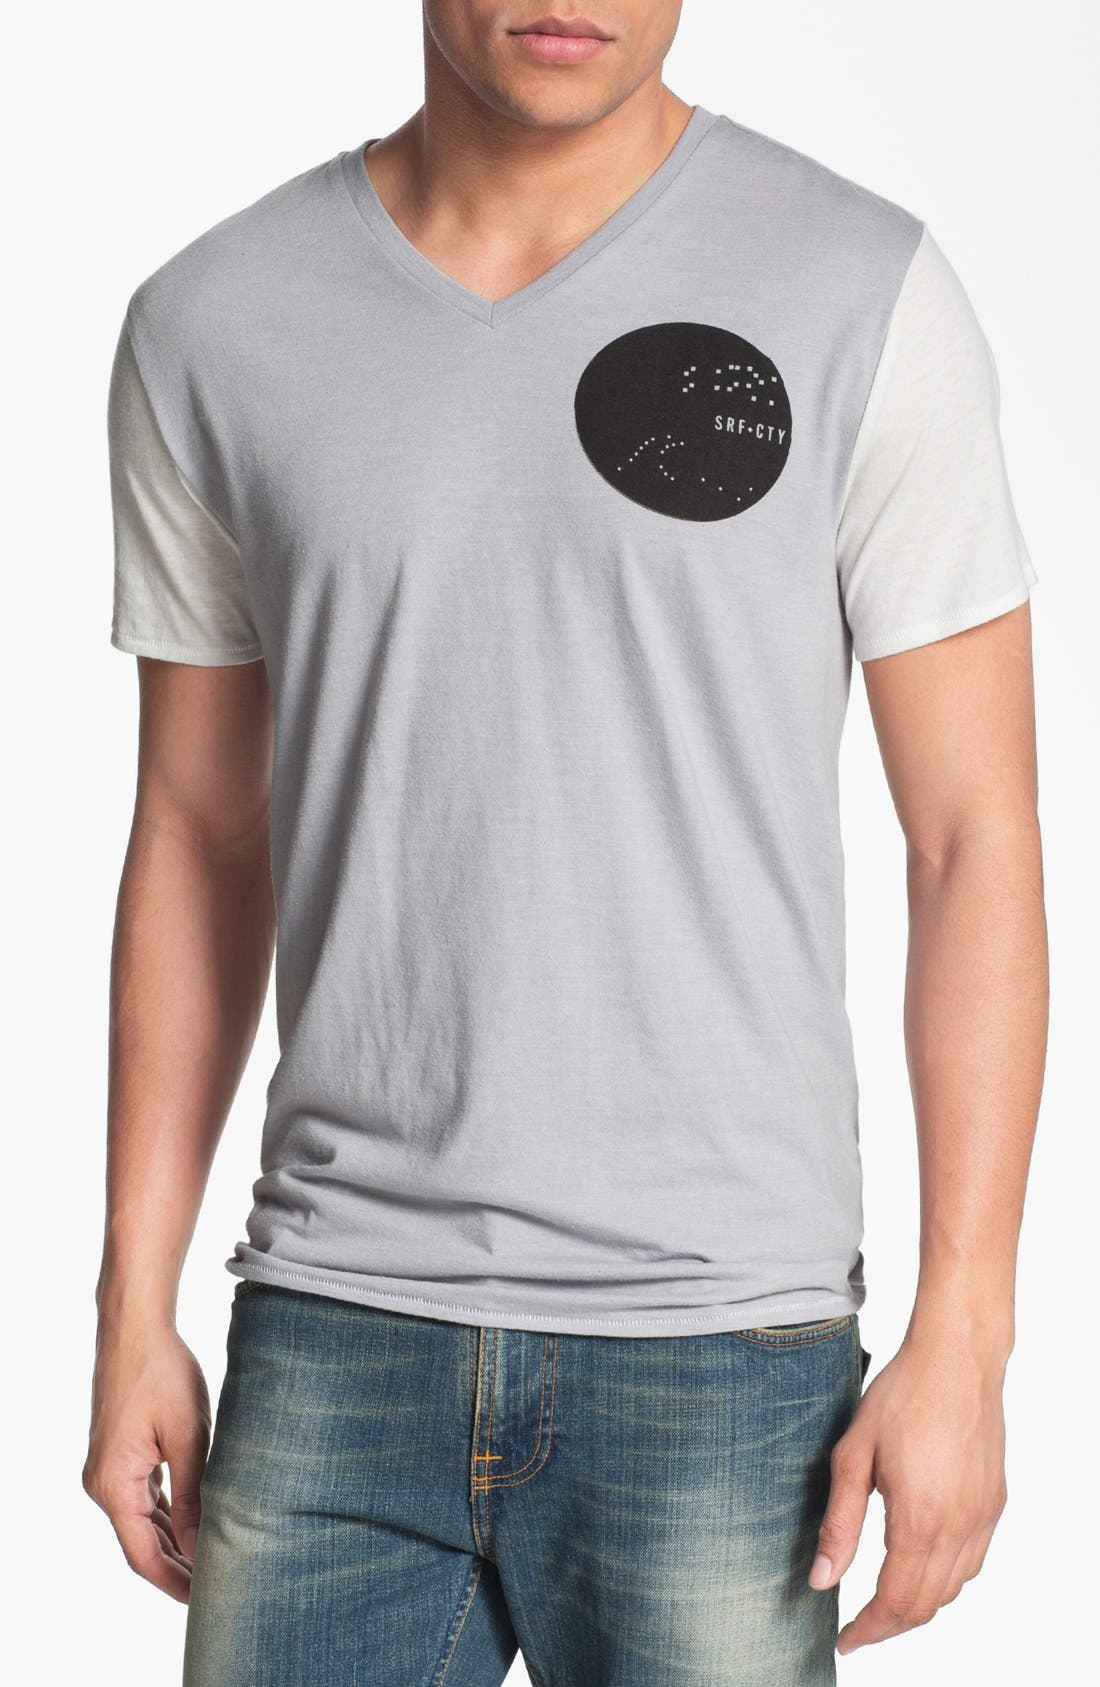 Alternate Image 1 Selected - Loomstate 'Surf City' Graphic V-Neck T-Shirt